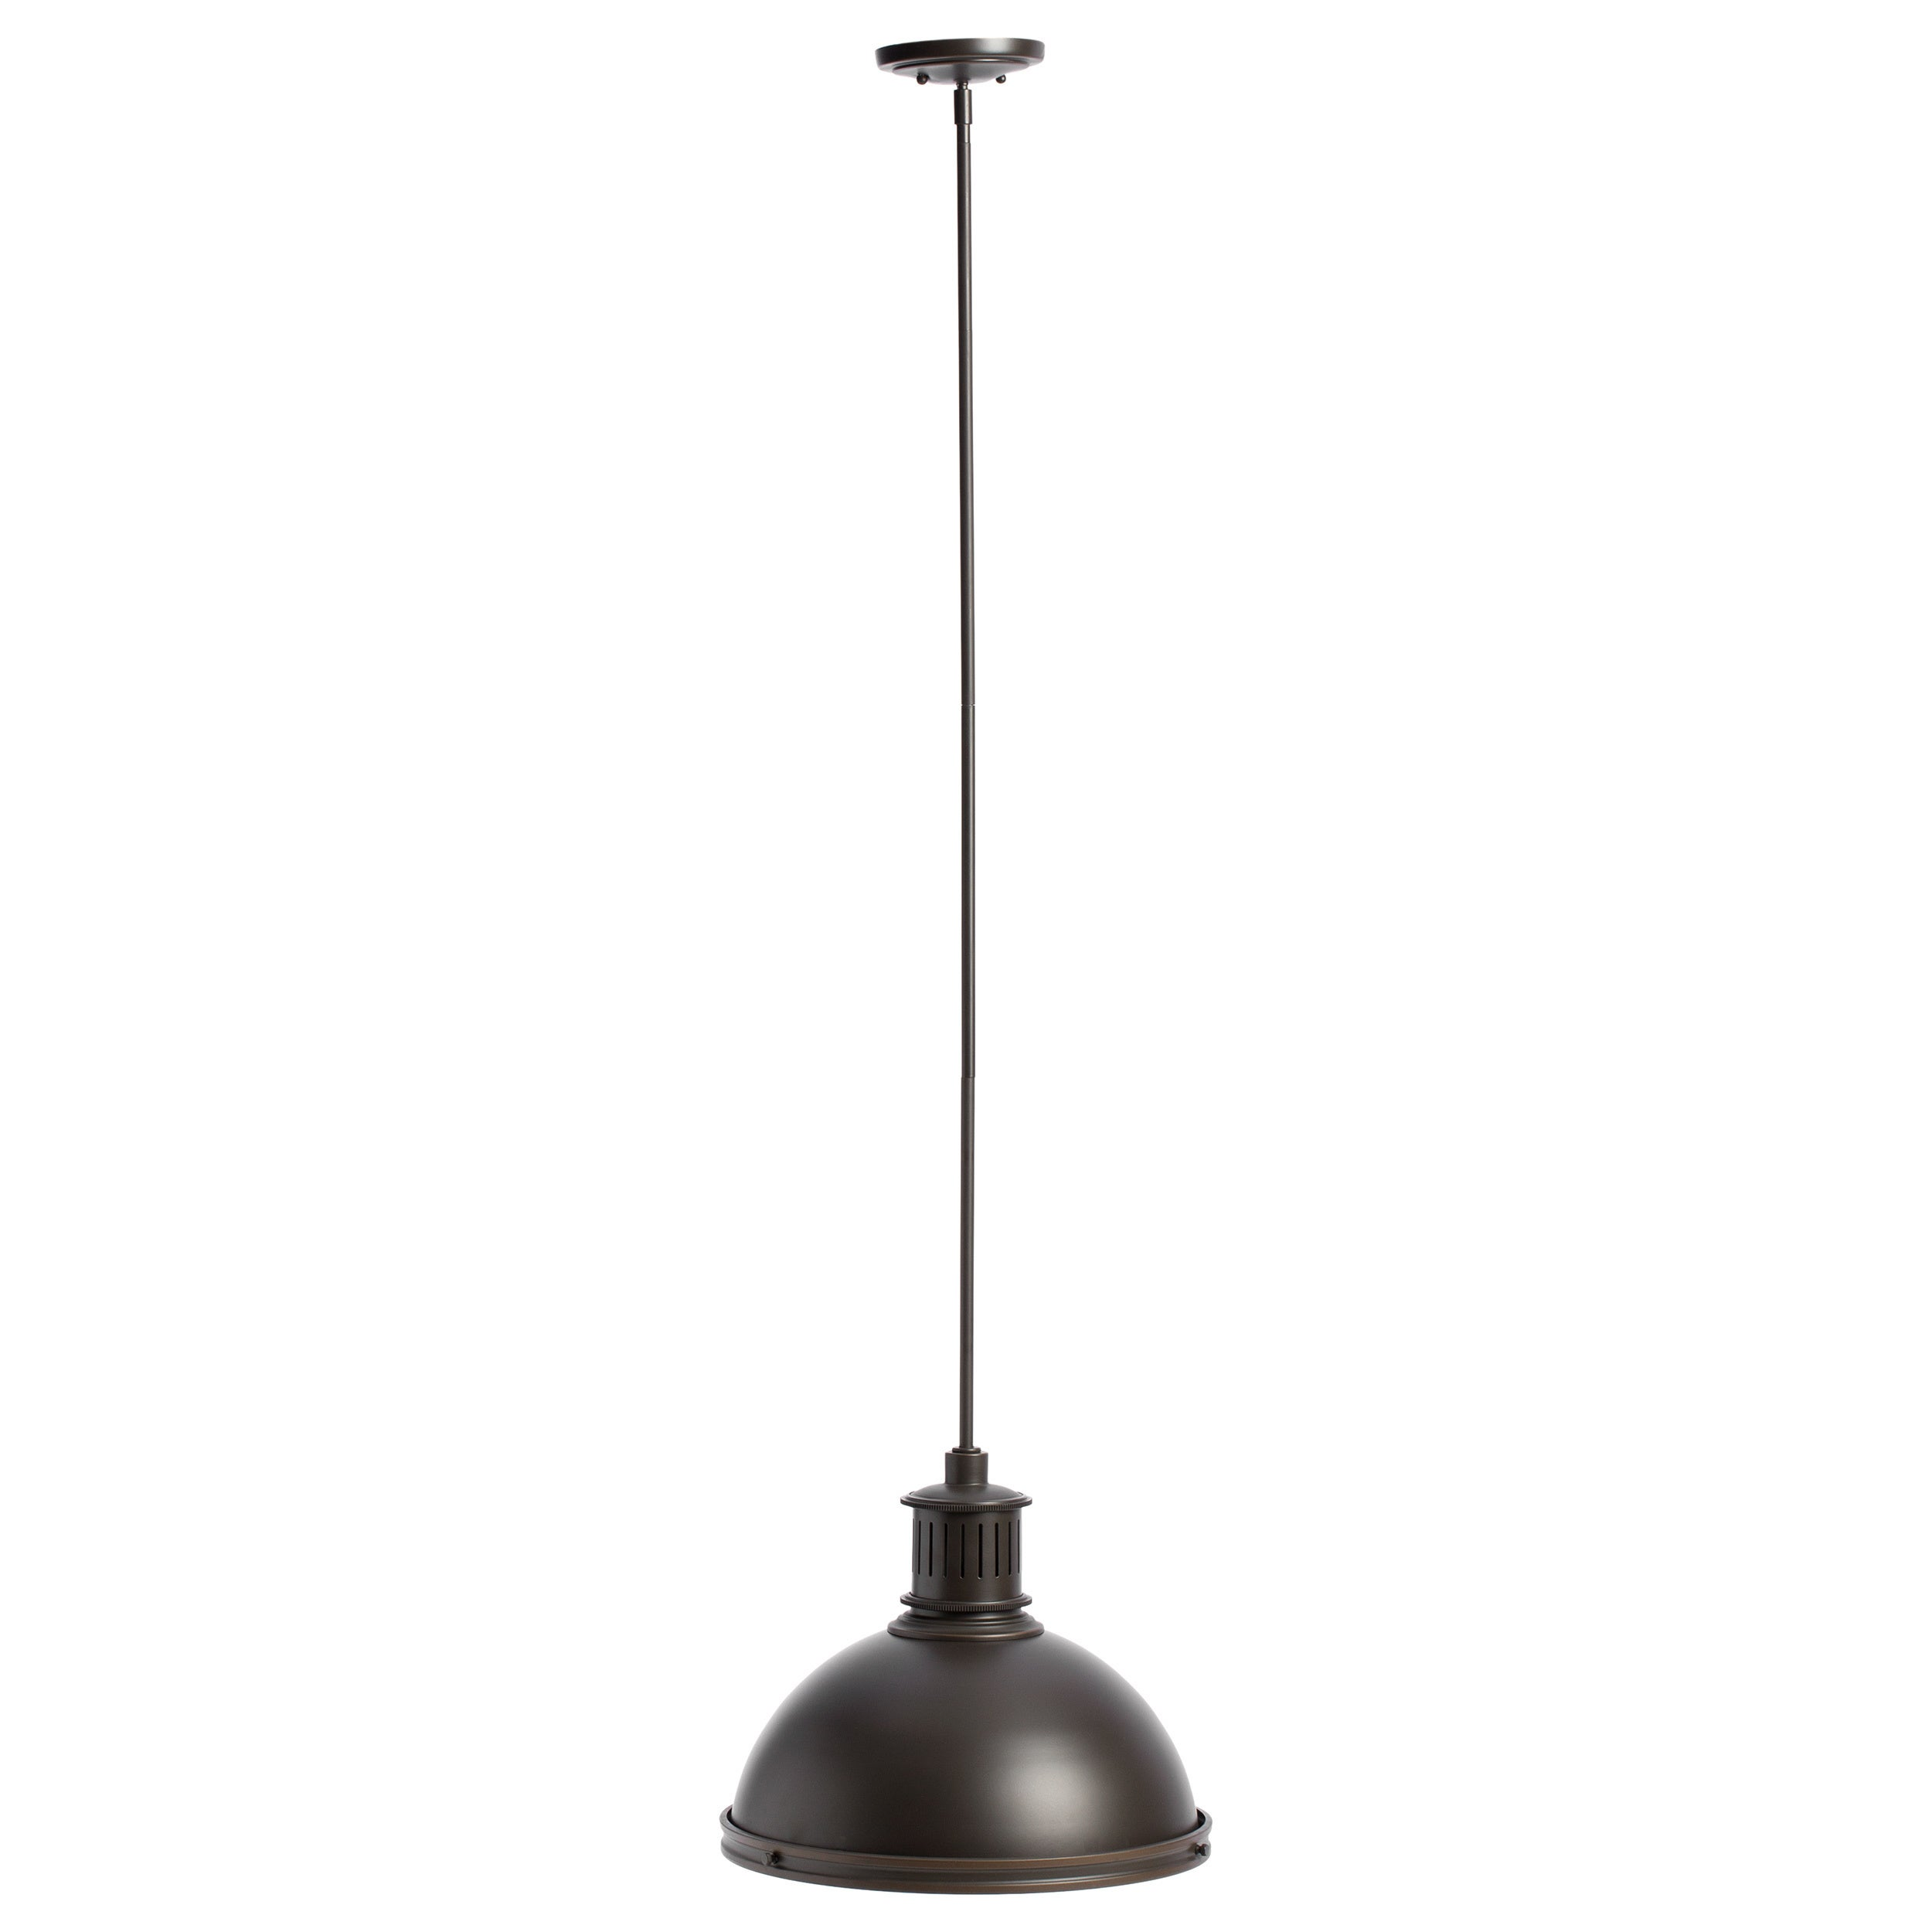 bronze metal oil that well style finish pairs rubbed pendant transitional simple polo an shade this light canarm in with a rod offers pin mini